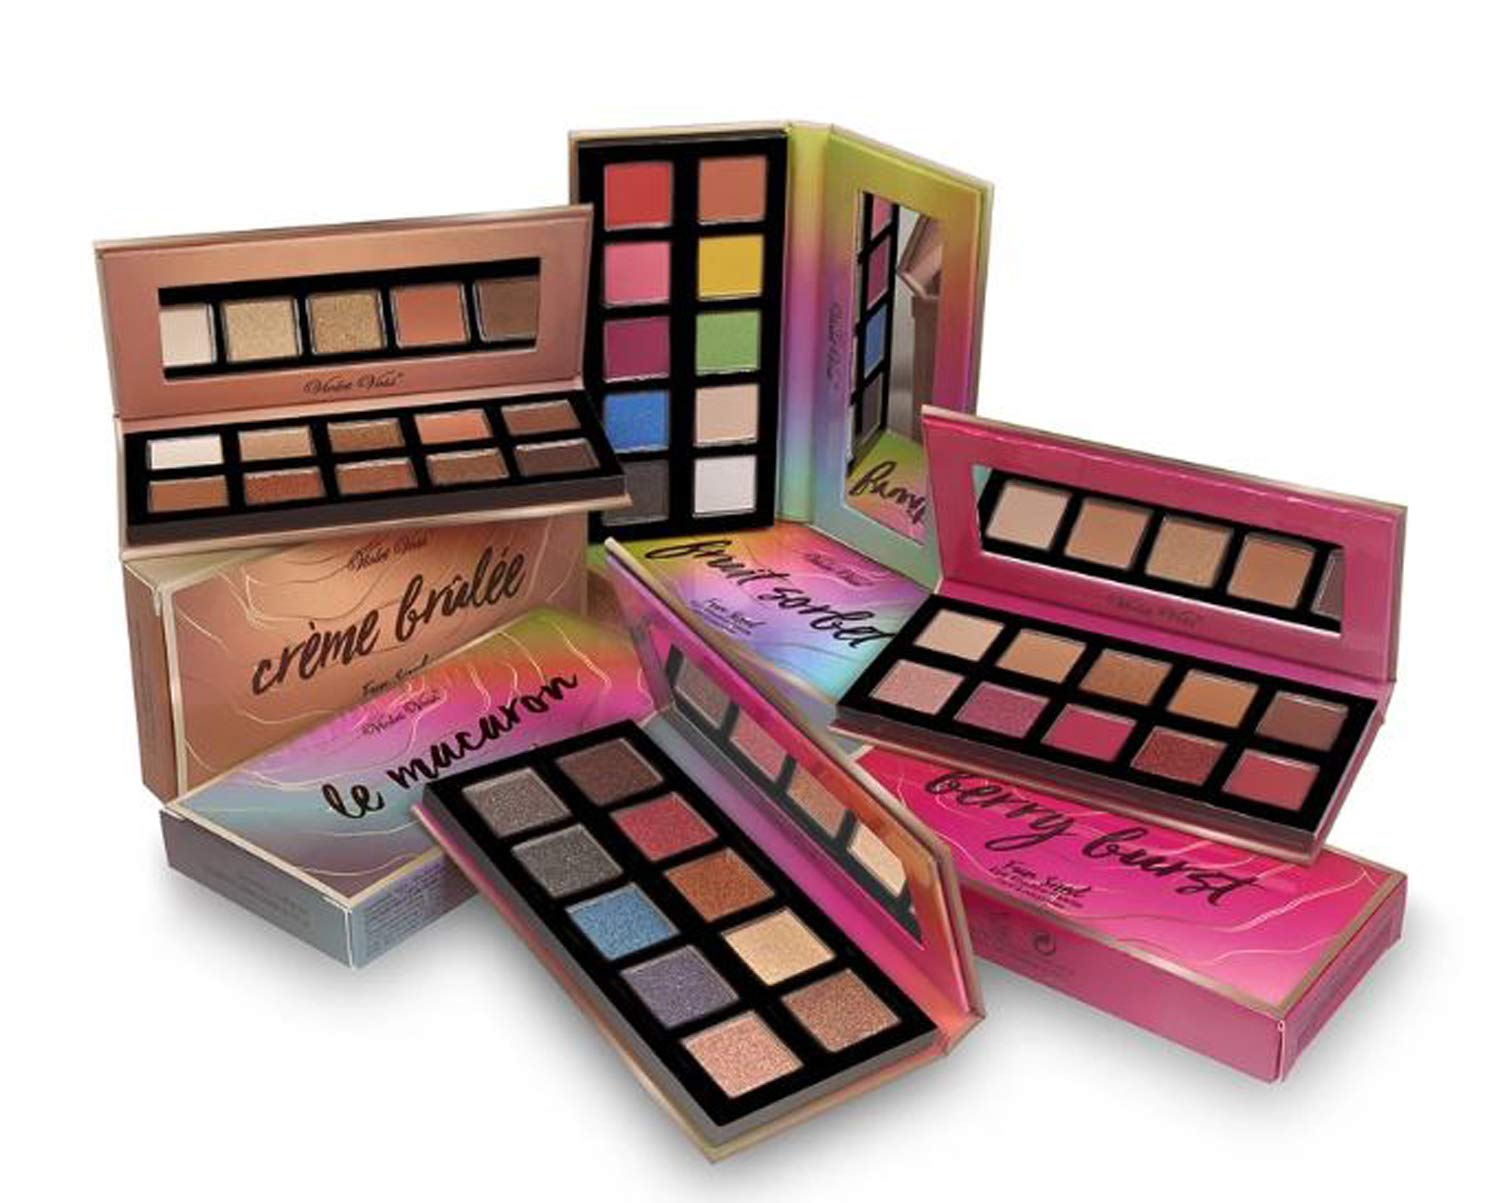 Violet Voss Sweet Treasures Mini Palette Bundle! Includes 4 Mini Eyeshadow Palettes! Mix Of Matte And Shimmer Shadows! Limited Edition Beautiful Eyeshadow Gift Set! by Violet Voss